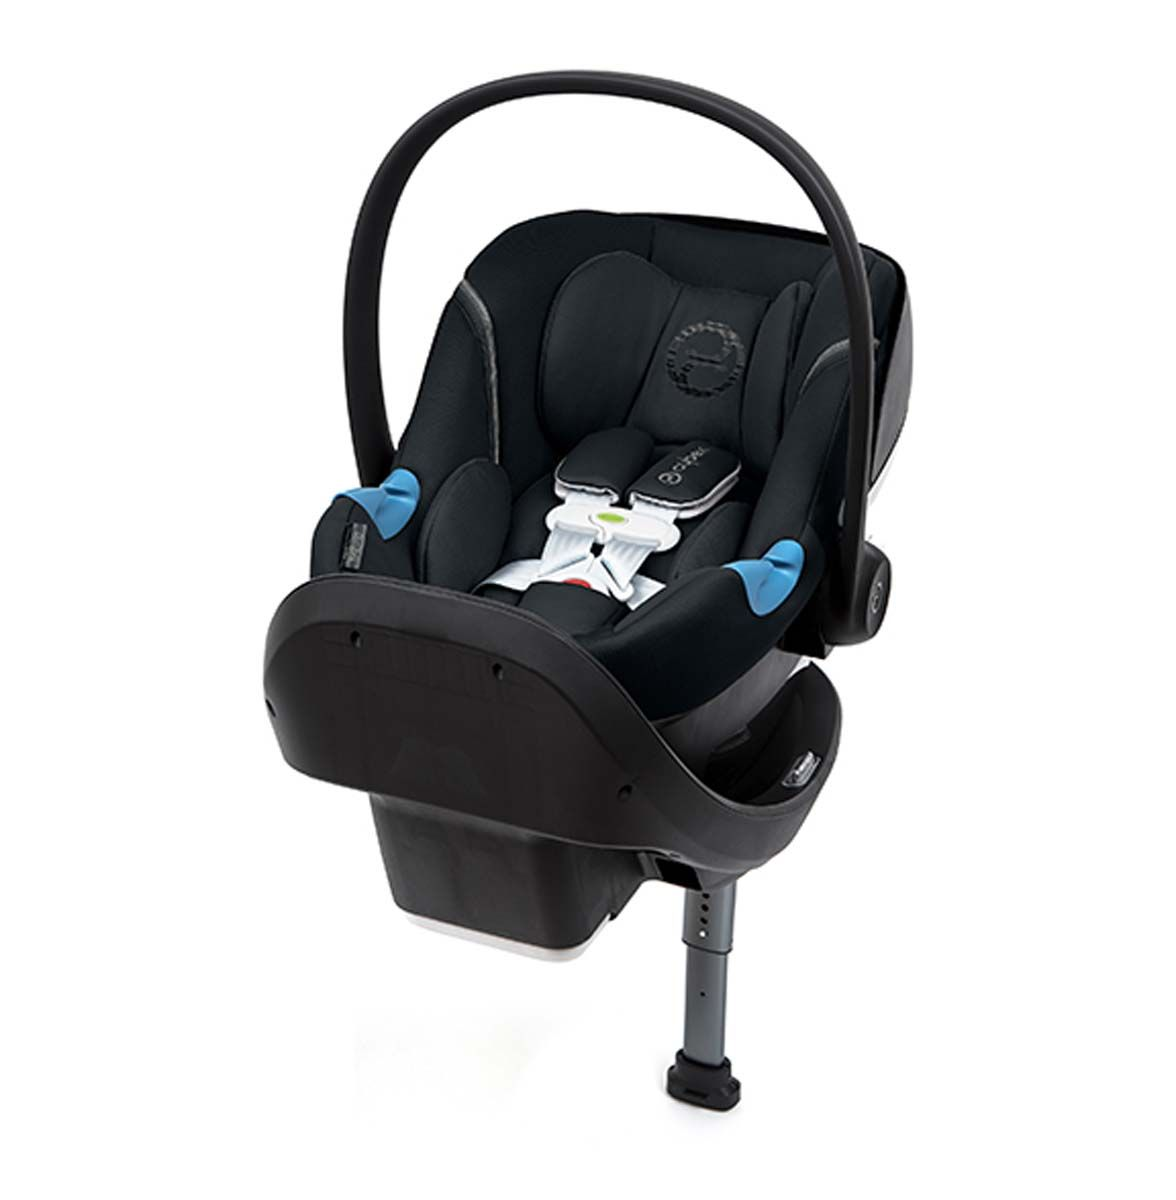 Cybex Aton M Infant Car Seat and Base